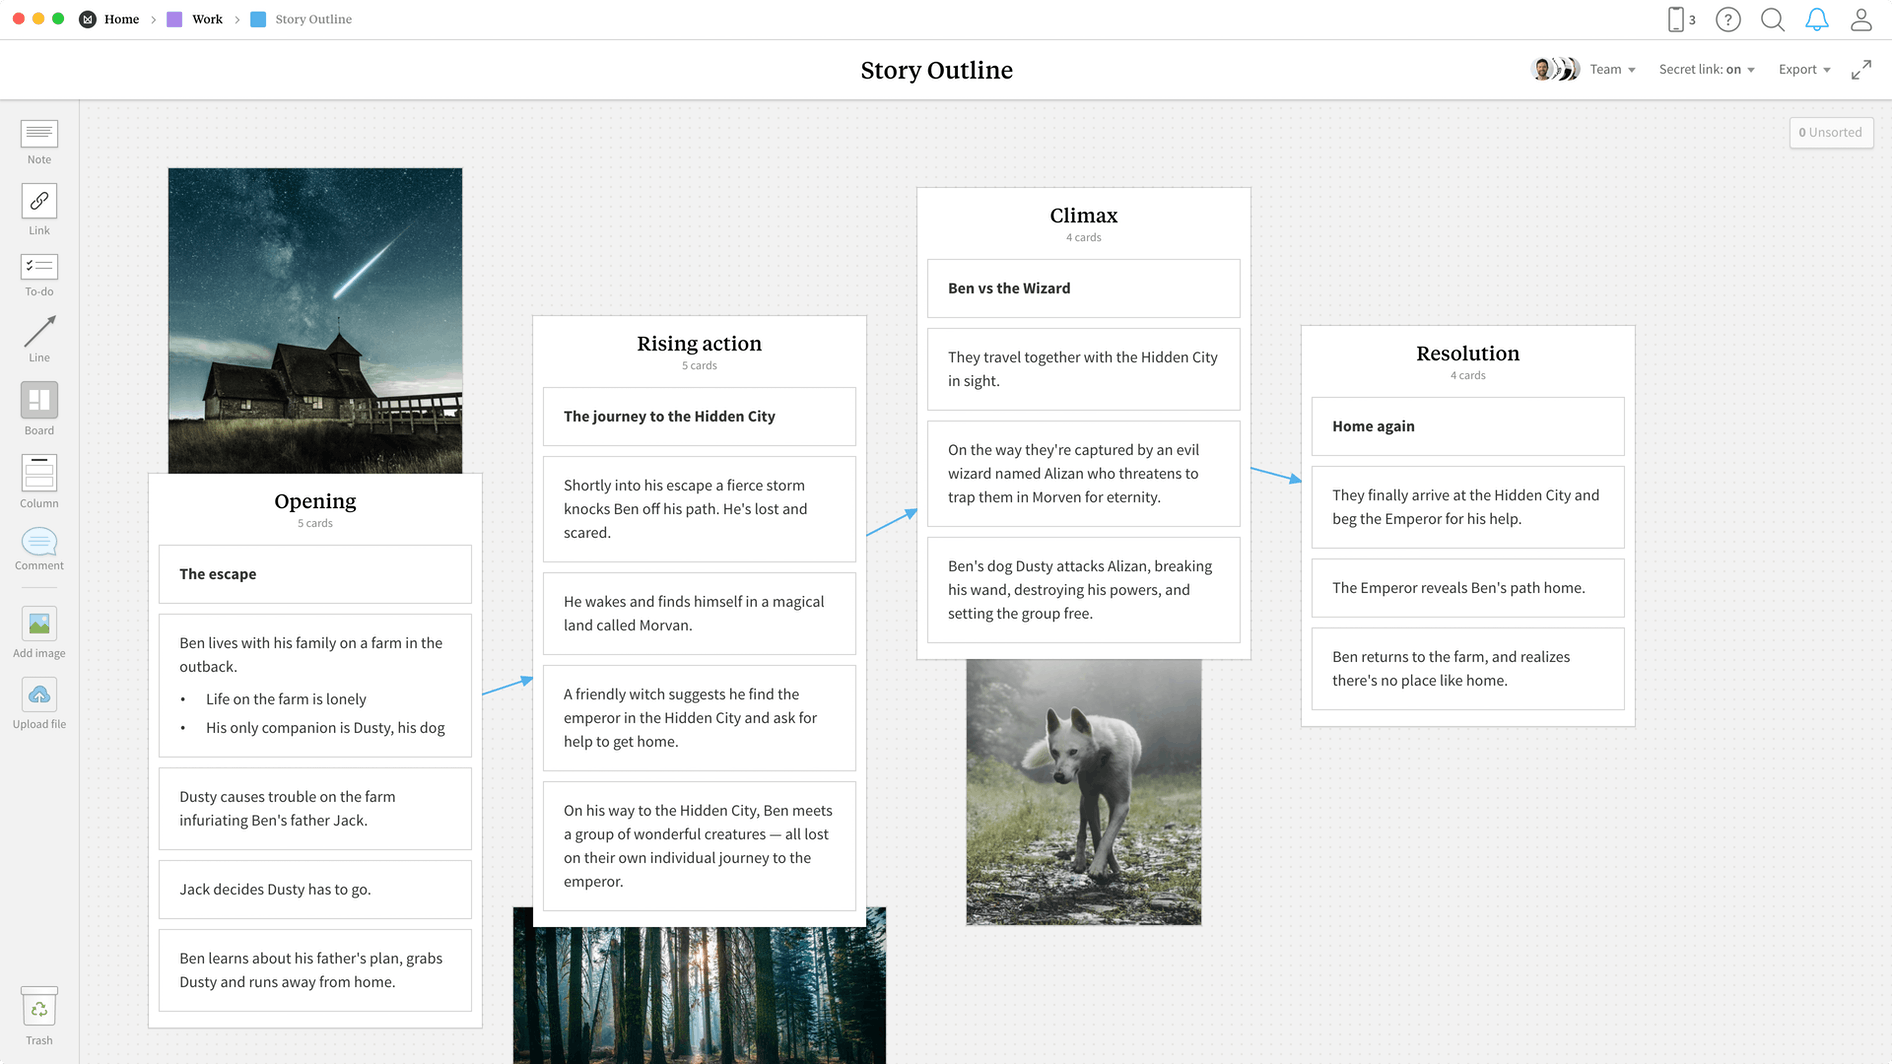 Story Outline Template, within the Milanote app